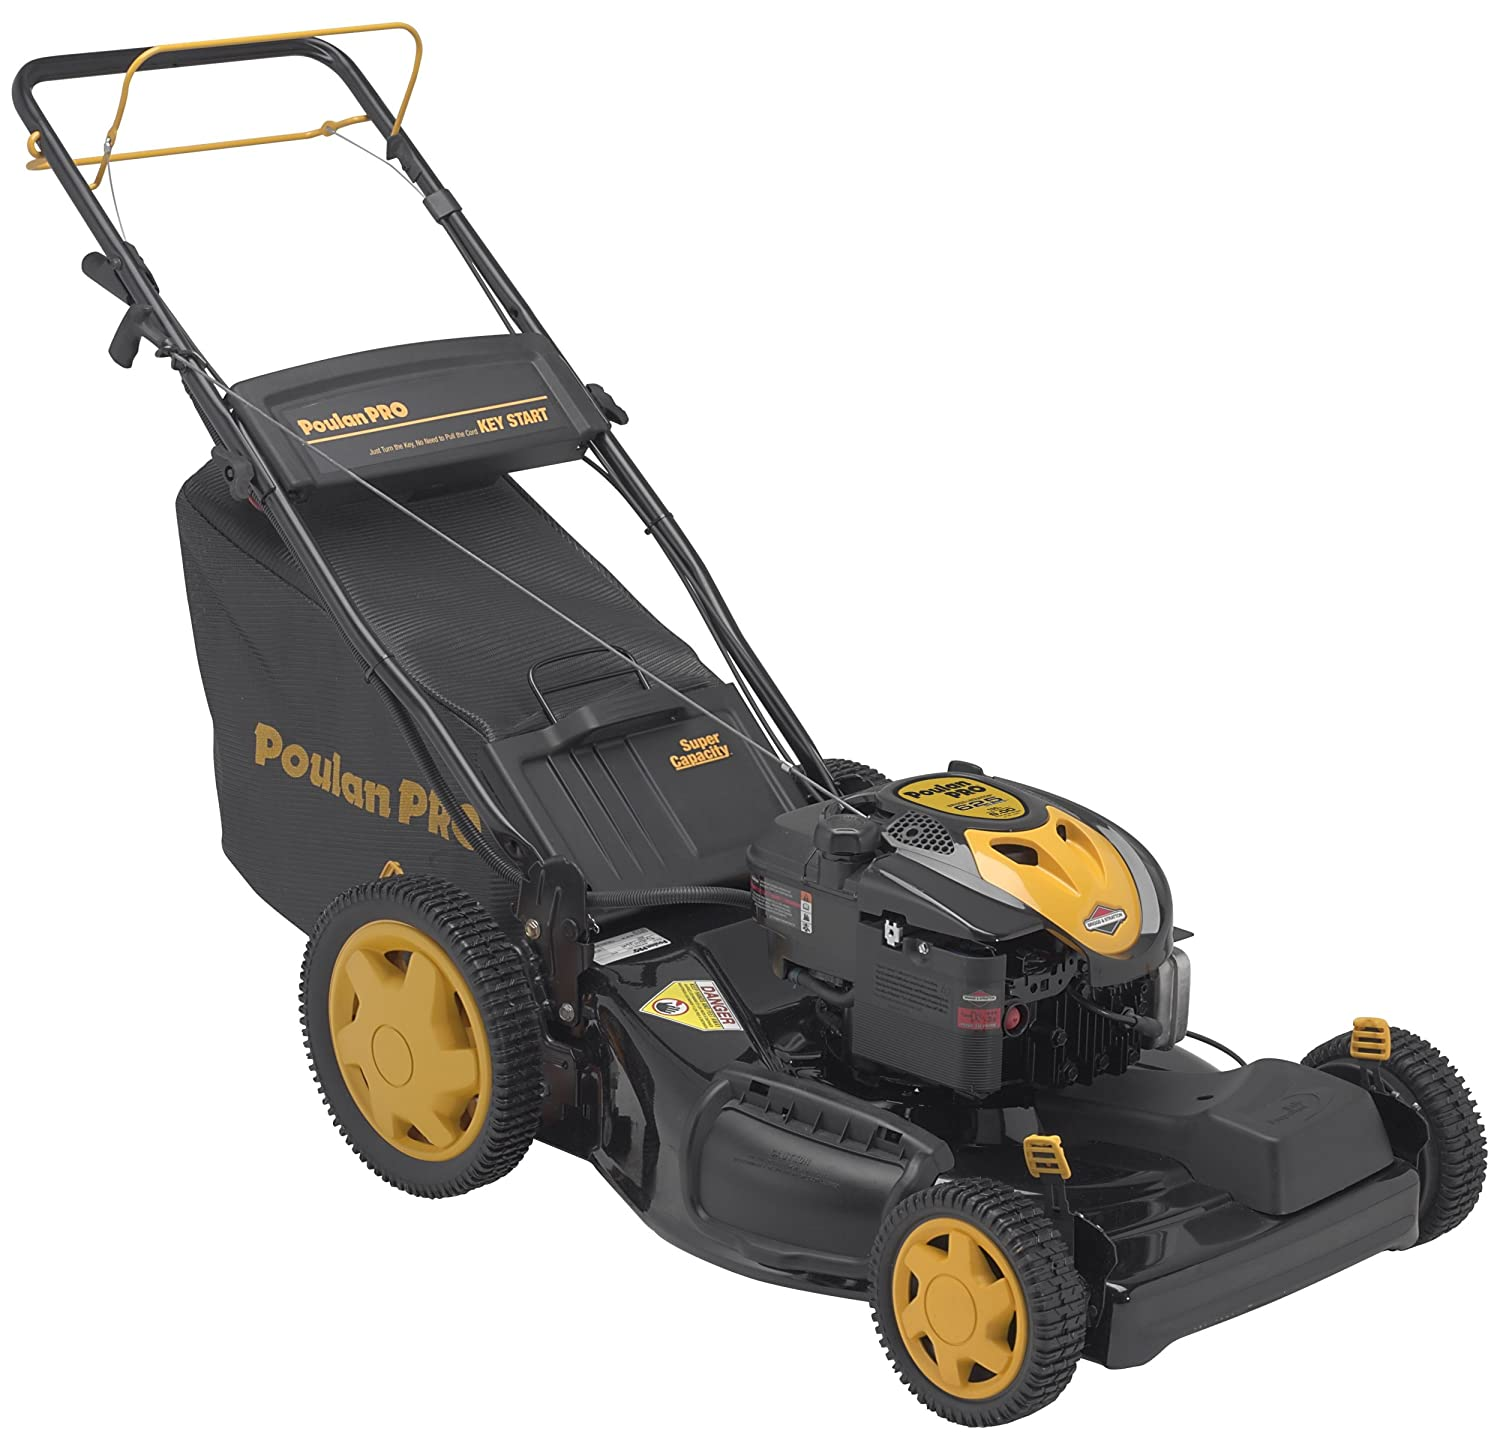 Amazon Poulan Pro Pr625y22rkp 22inch 625 Series Briggs. Amazon Poulan Pro Pr625y22rkp 22inch 625 Series Briggs Stratton Gaspowered Fwd Selfpropelled Lawn Mower With Electric Start And High Rear Wheels. Opel. Poulan Self Propelled Mower Parts Diagram At Scoala.co